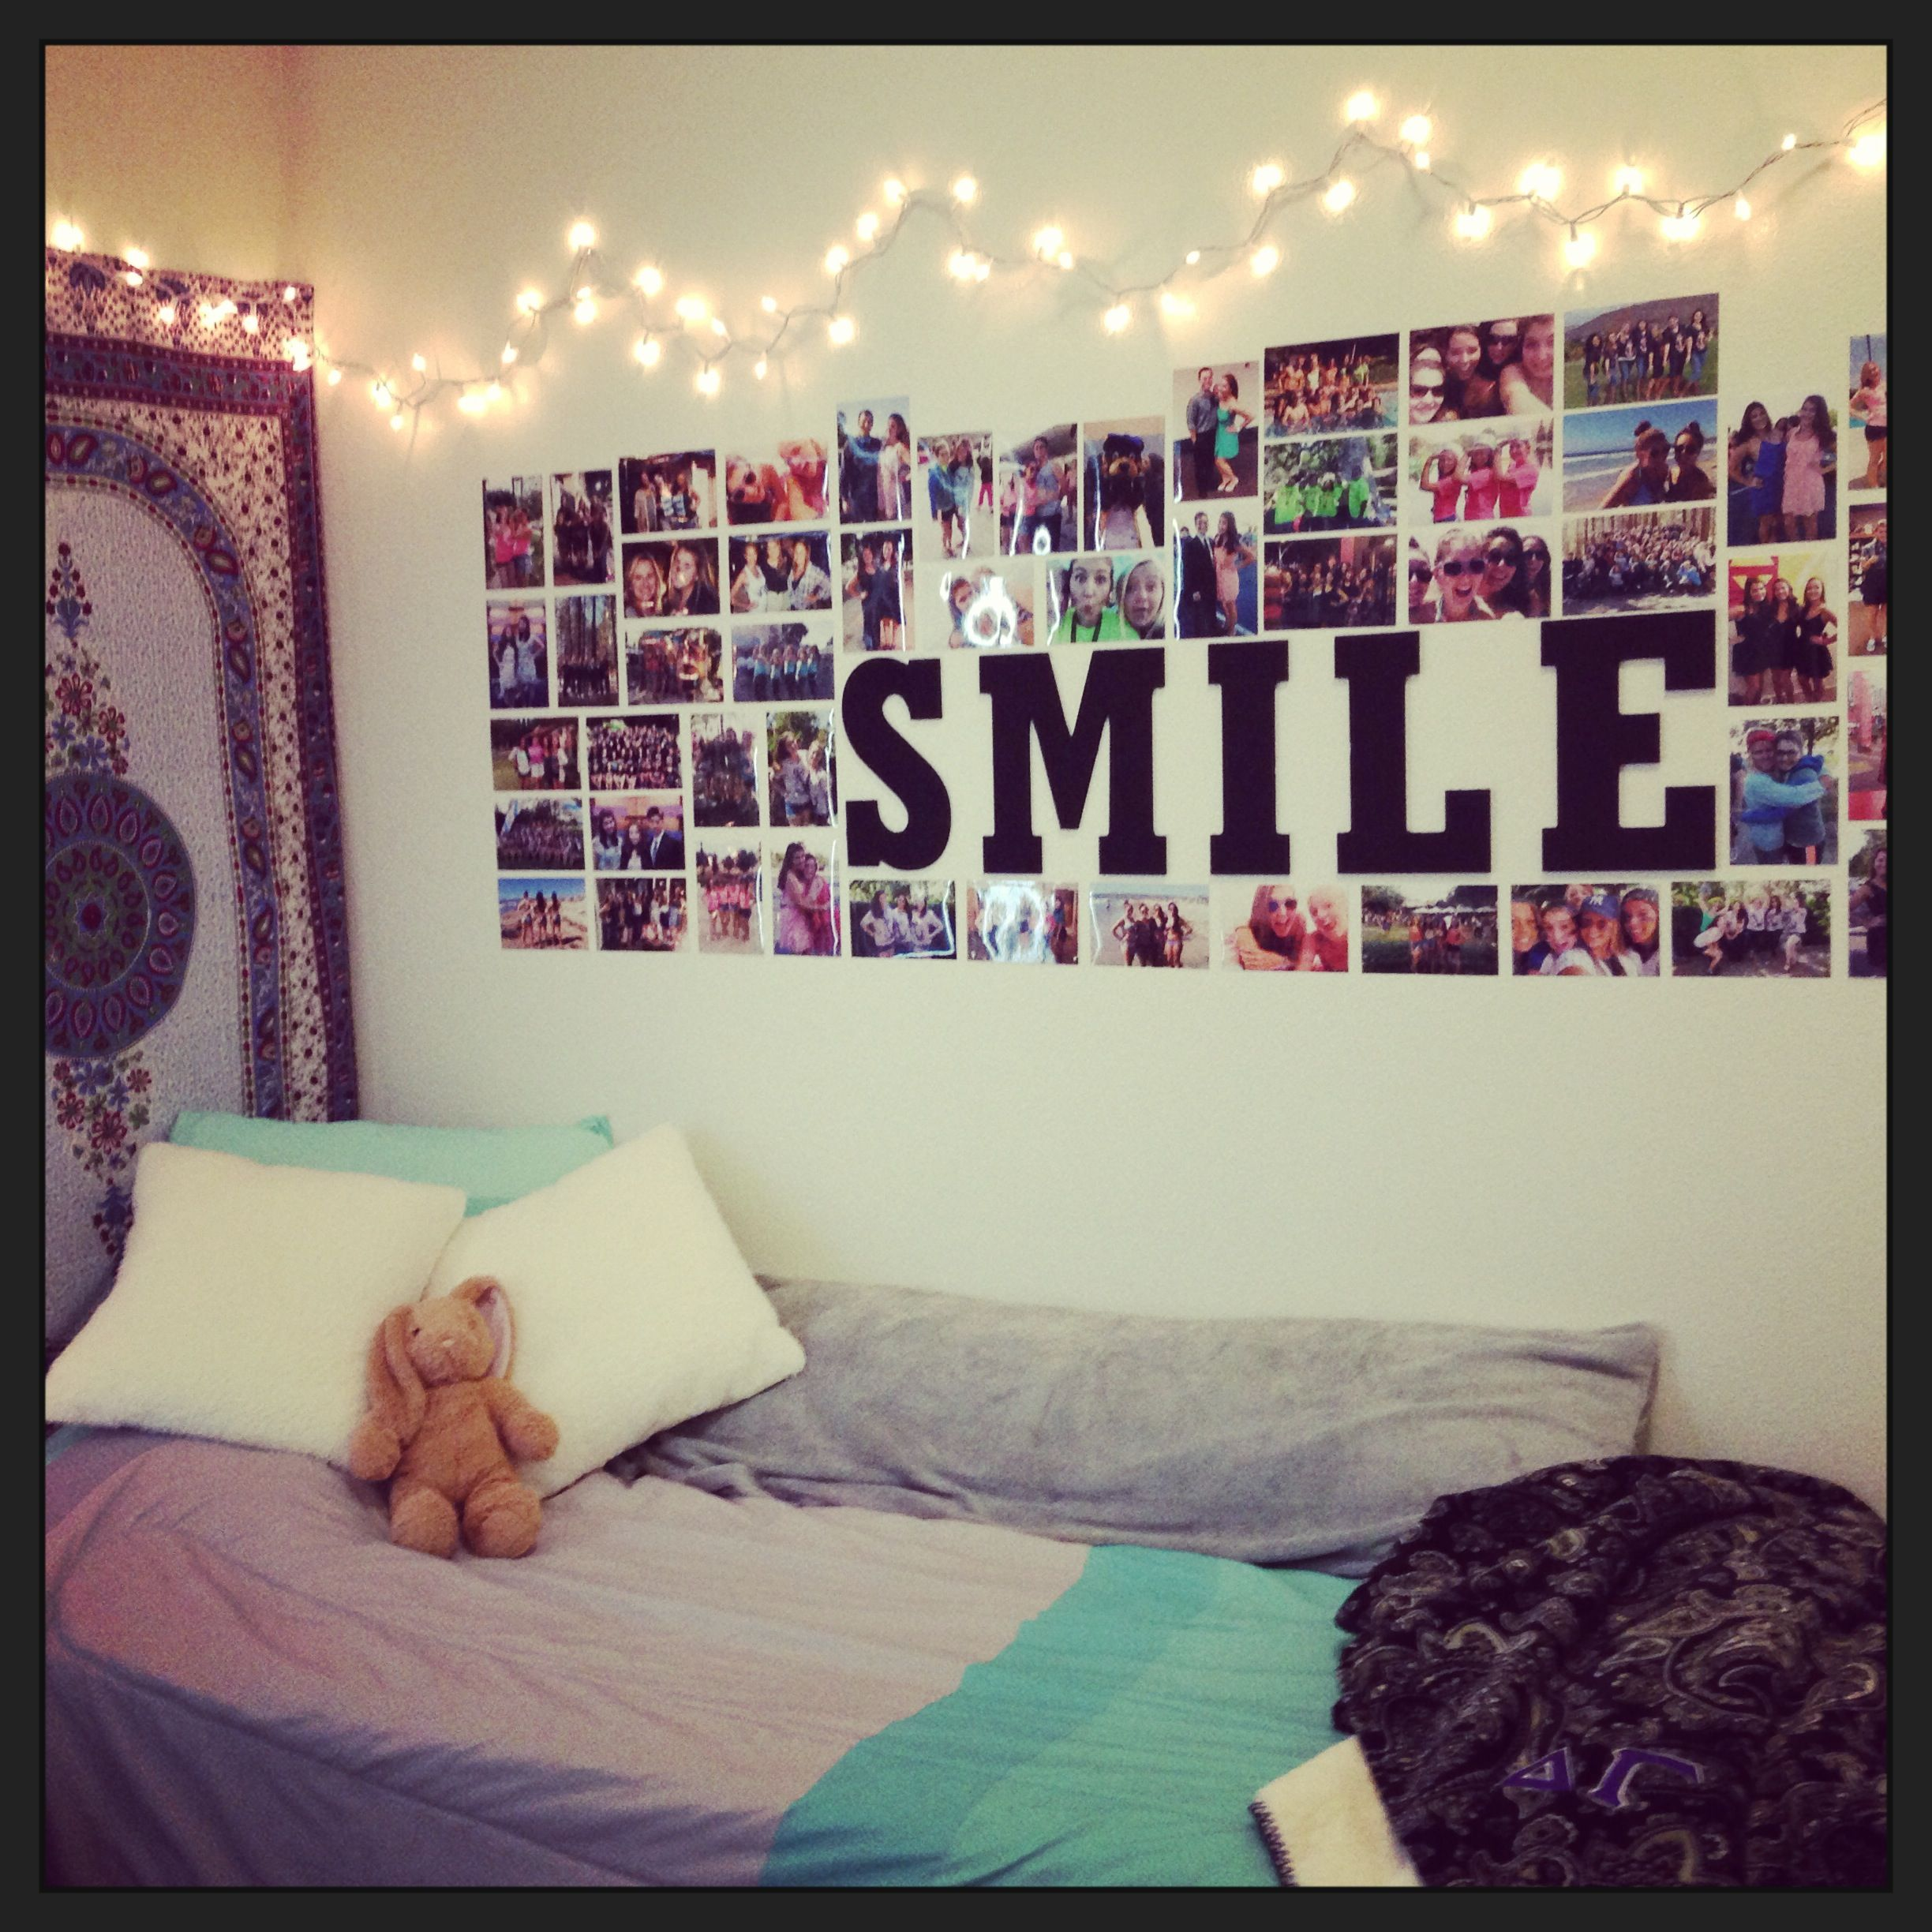 Bedroom christmas lights quotes - Cute Way To Furnish Your Dorm Room A Cheap Tapestry Homemade Painted Wooden Letters From Micheal S And Photos Without The Christmas Lights Wastes Too